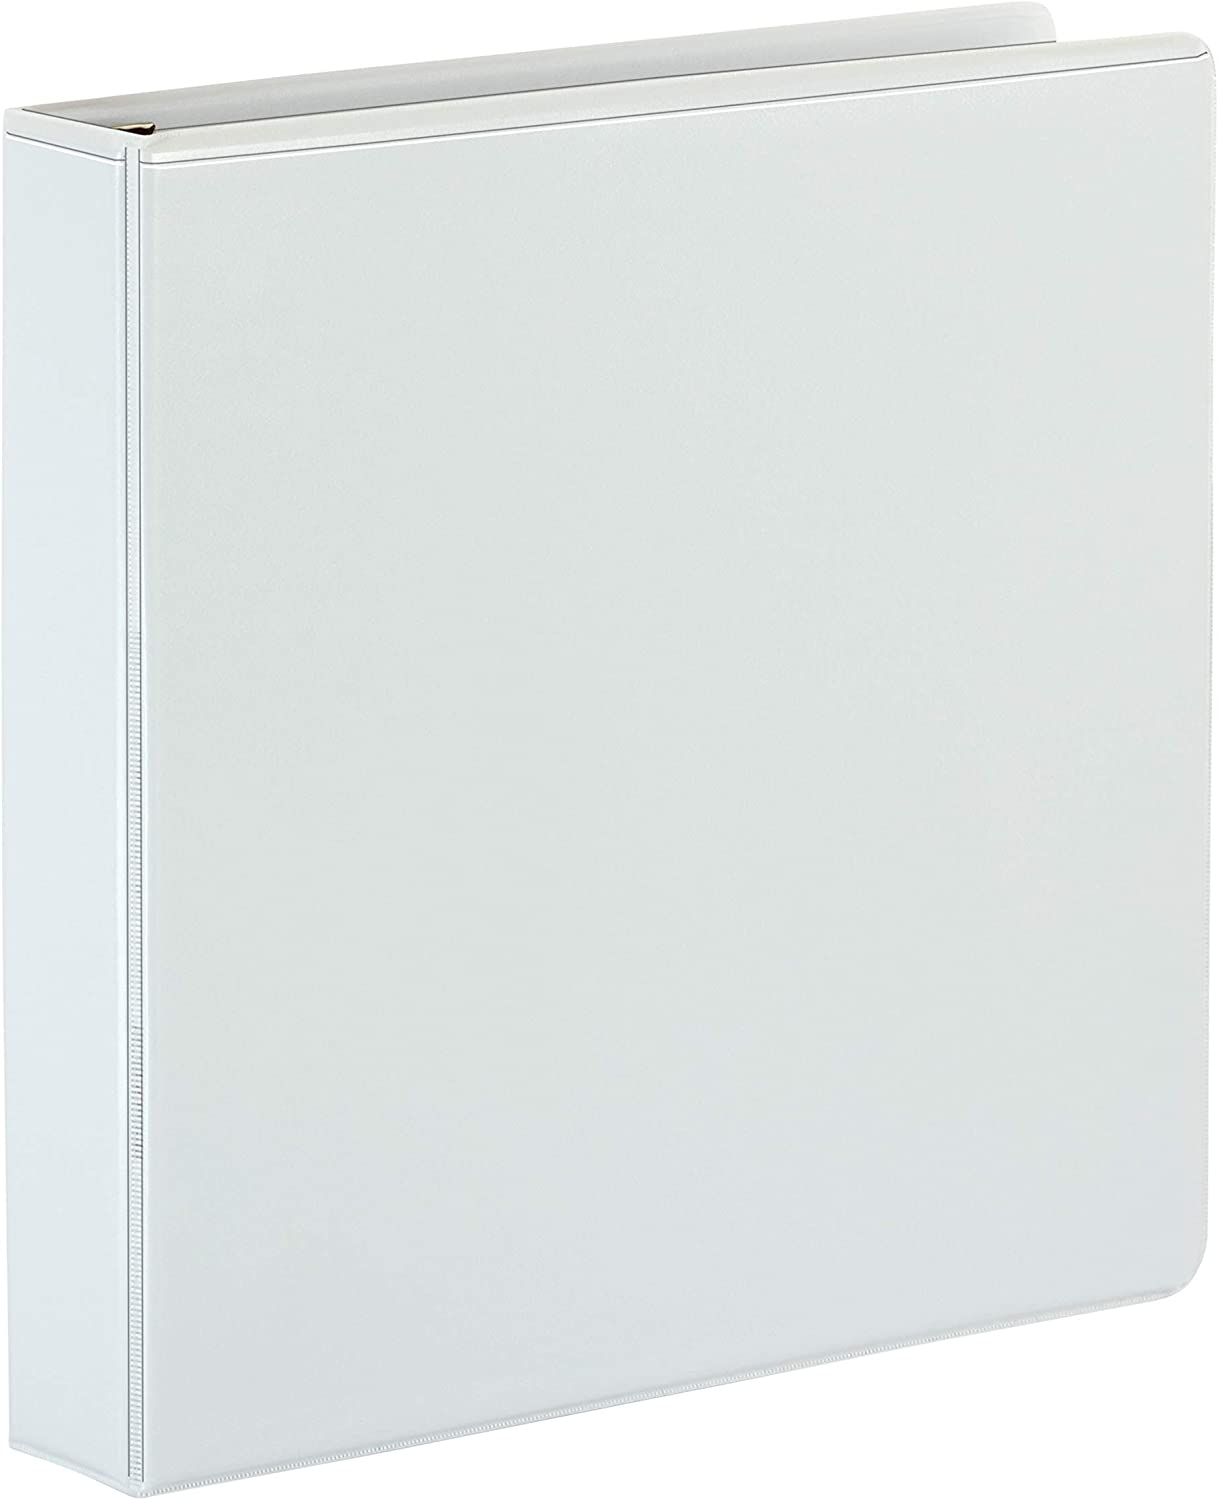 565-Sheet Capacity Cardinal Premier Extra-Wide 3-Ring Binder ONE-Touch Easy Open Locking Slant-D Rings ClearVue Cover White 2 13320